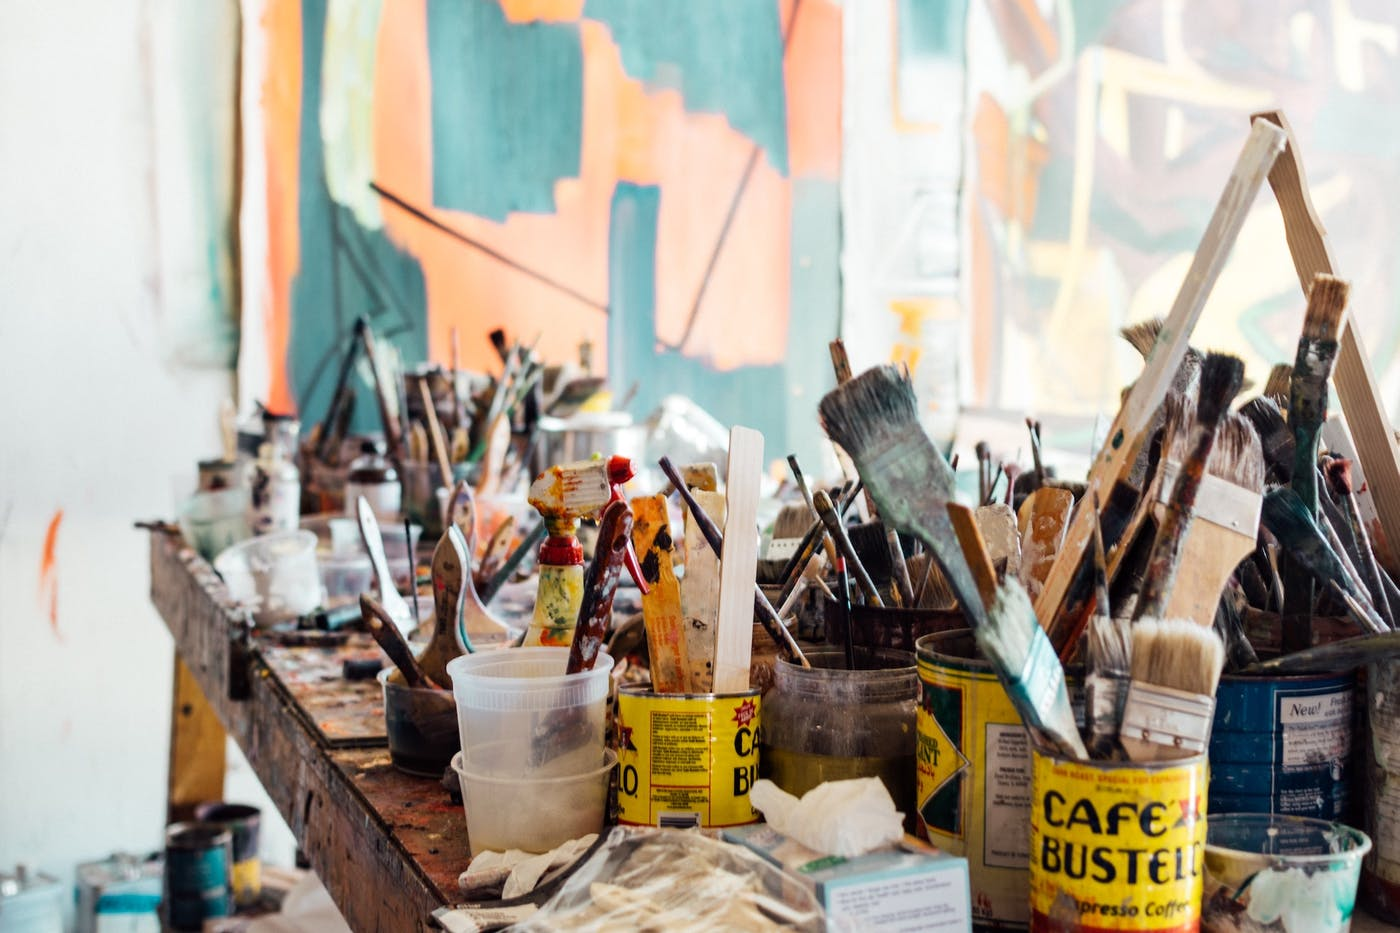 Paintbrushes in a workspace